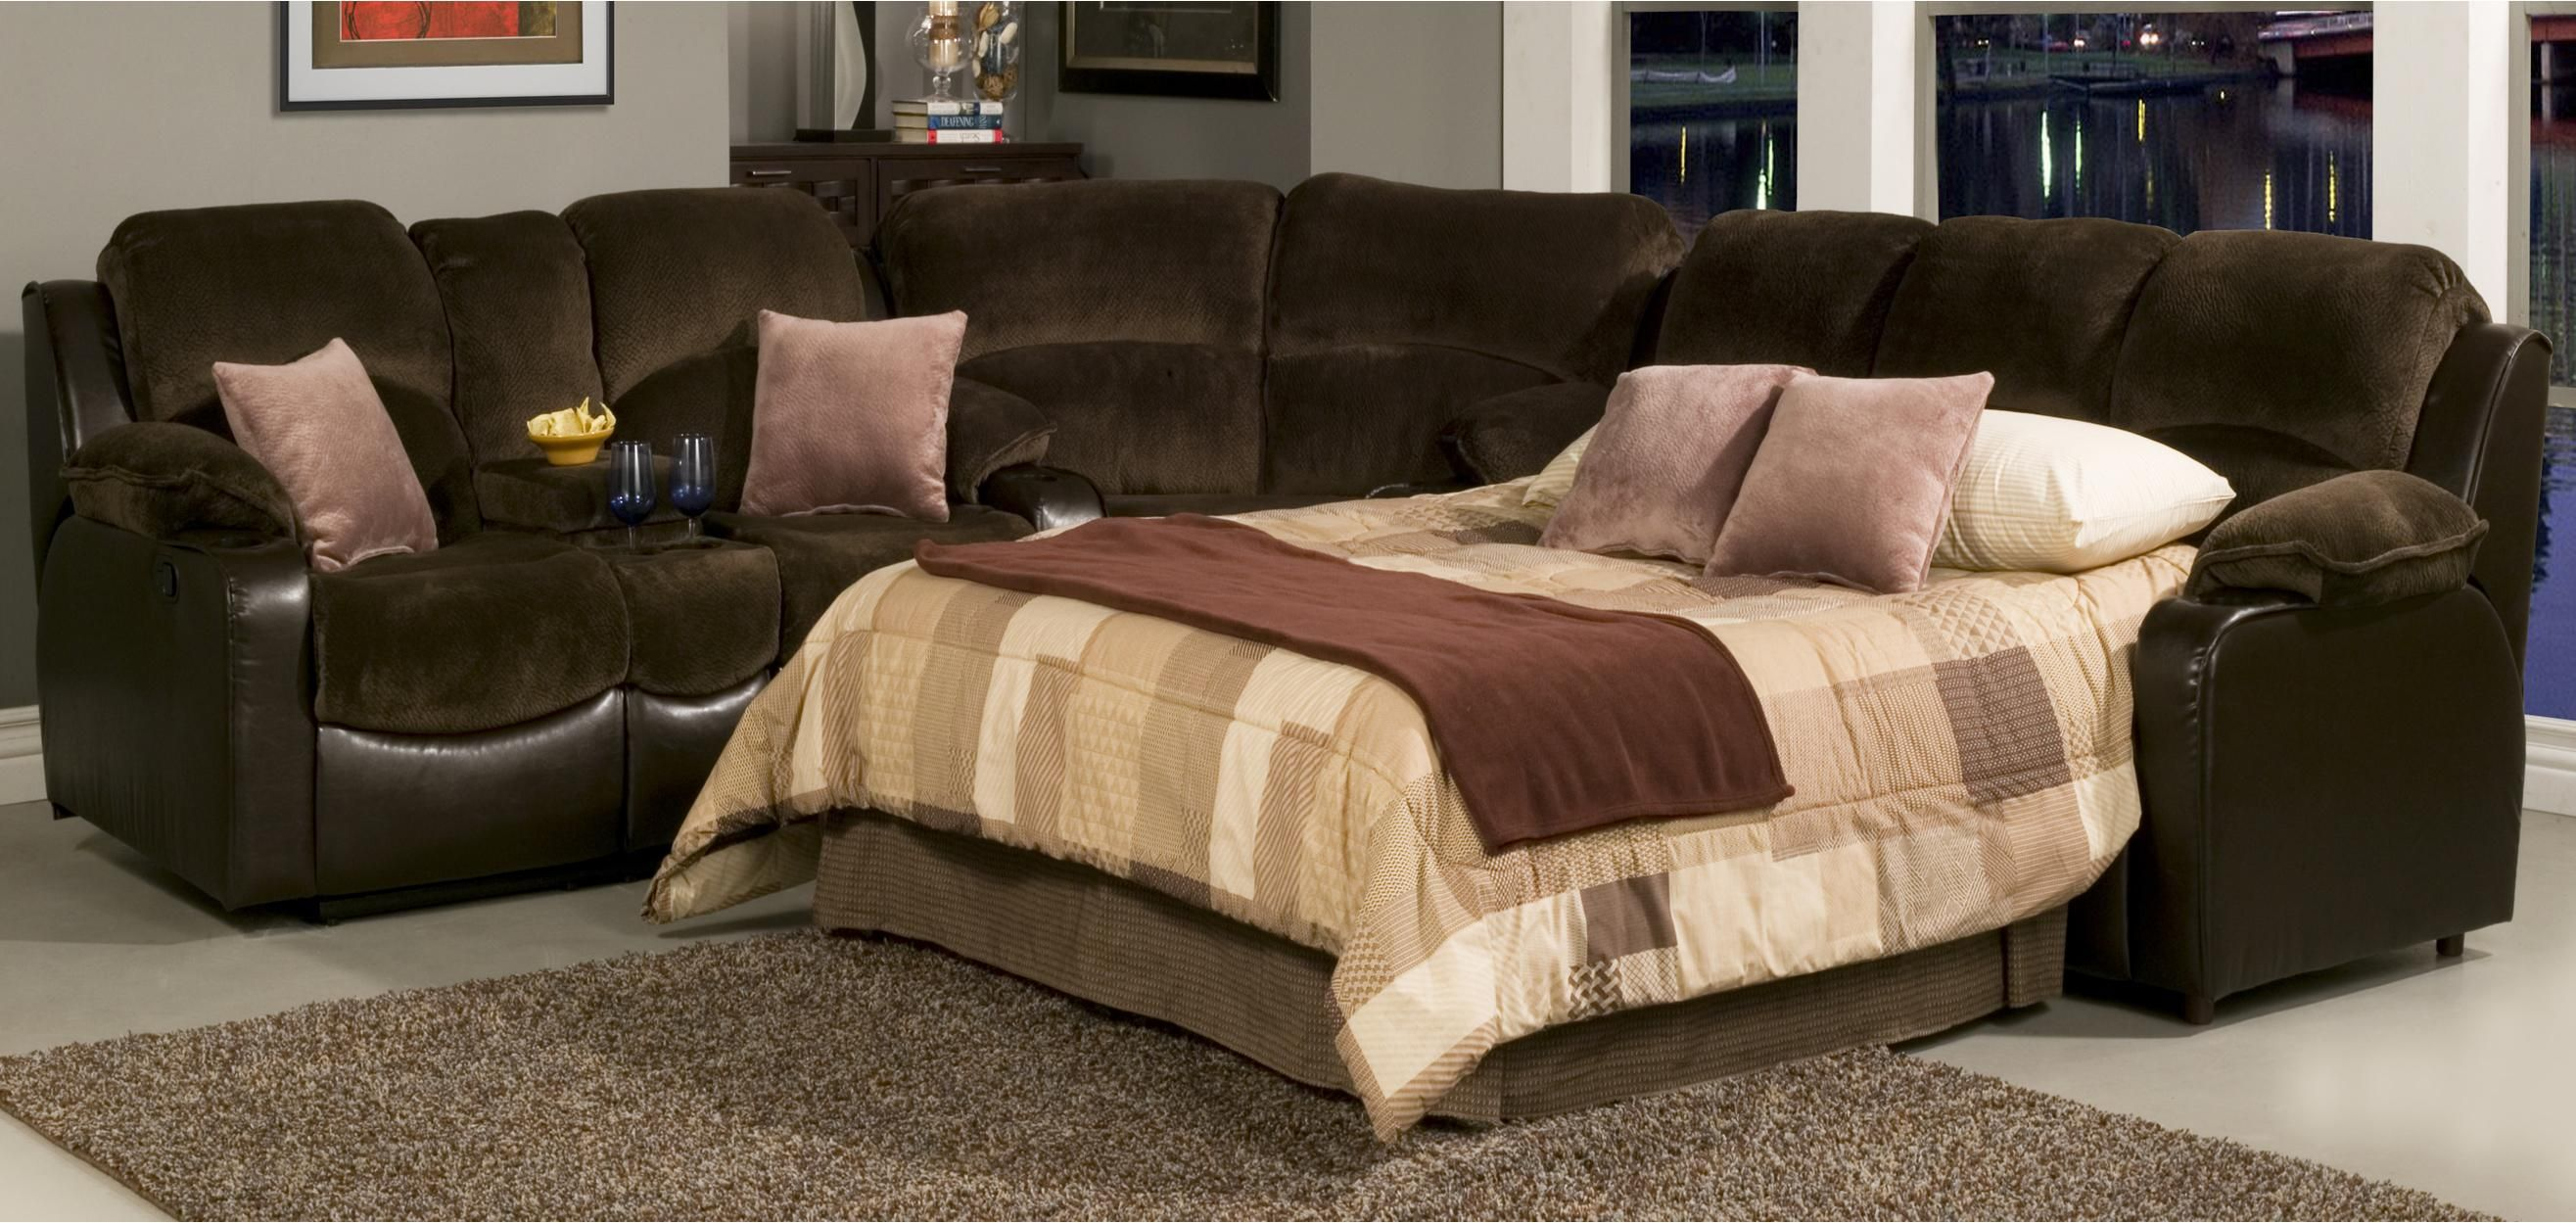 pull out bed sectional sleeper sofa